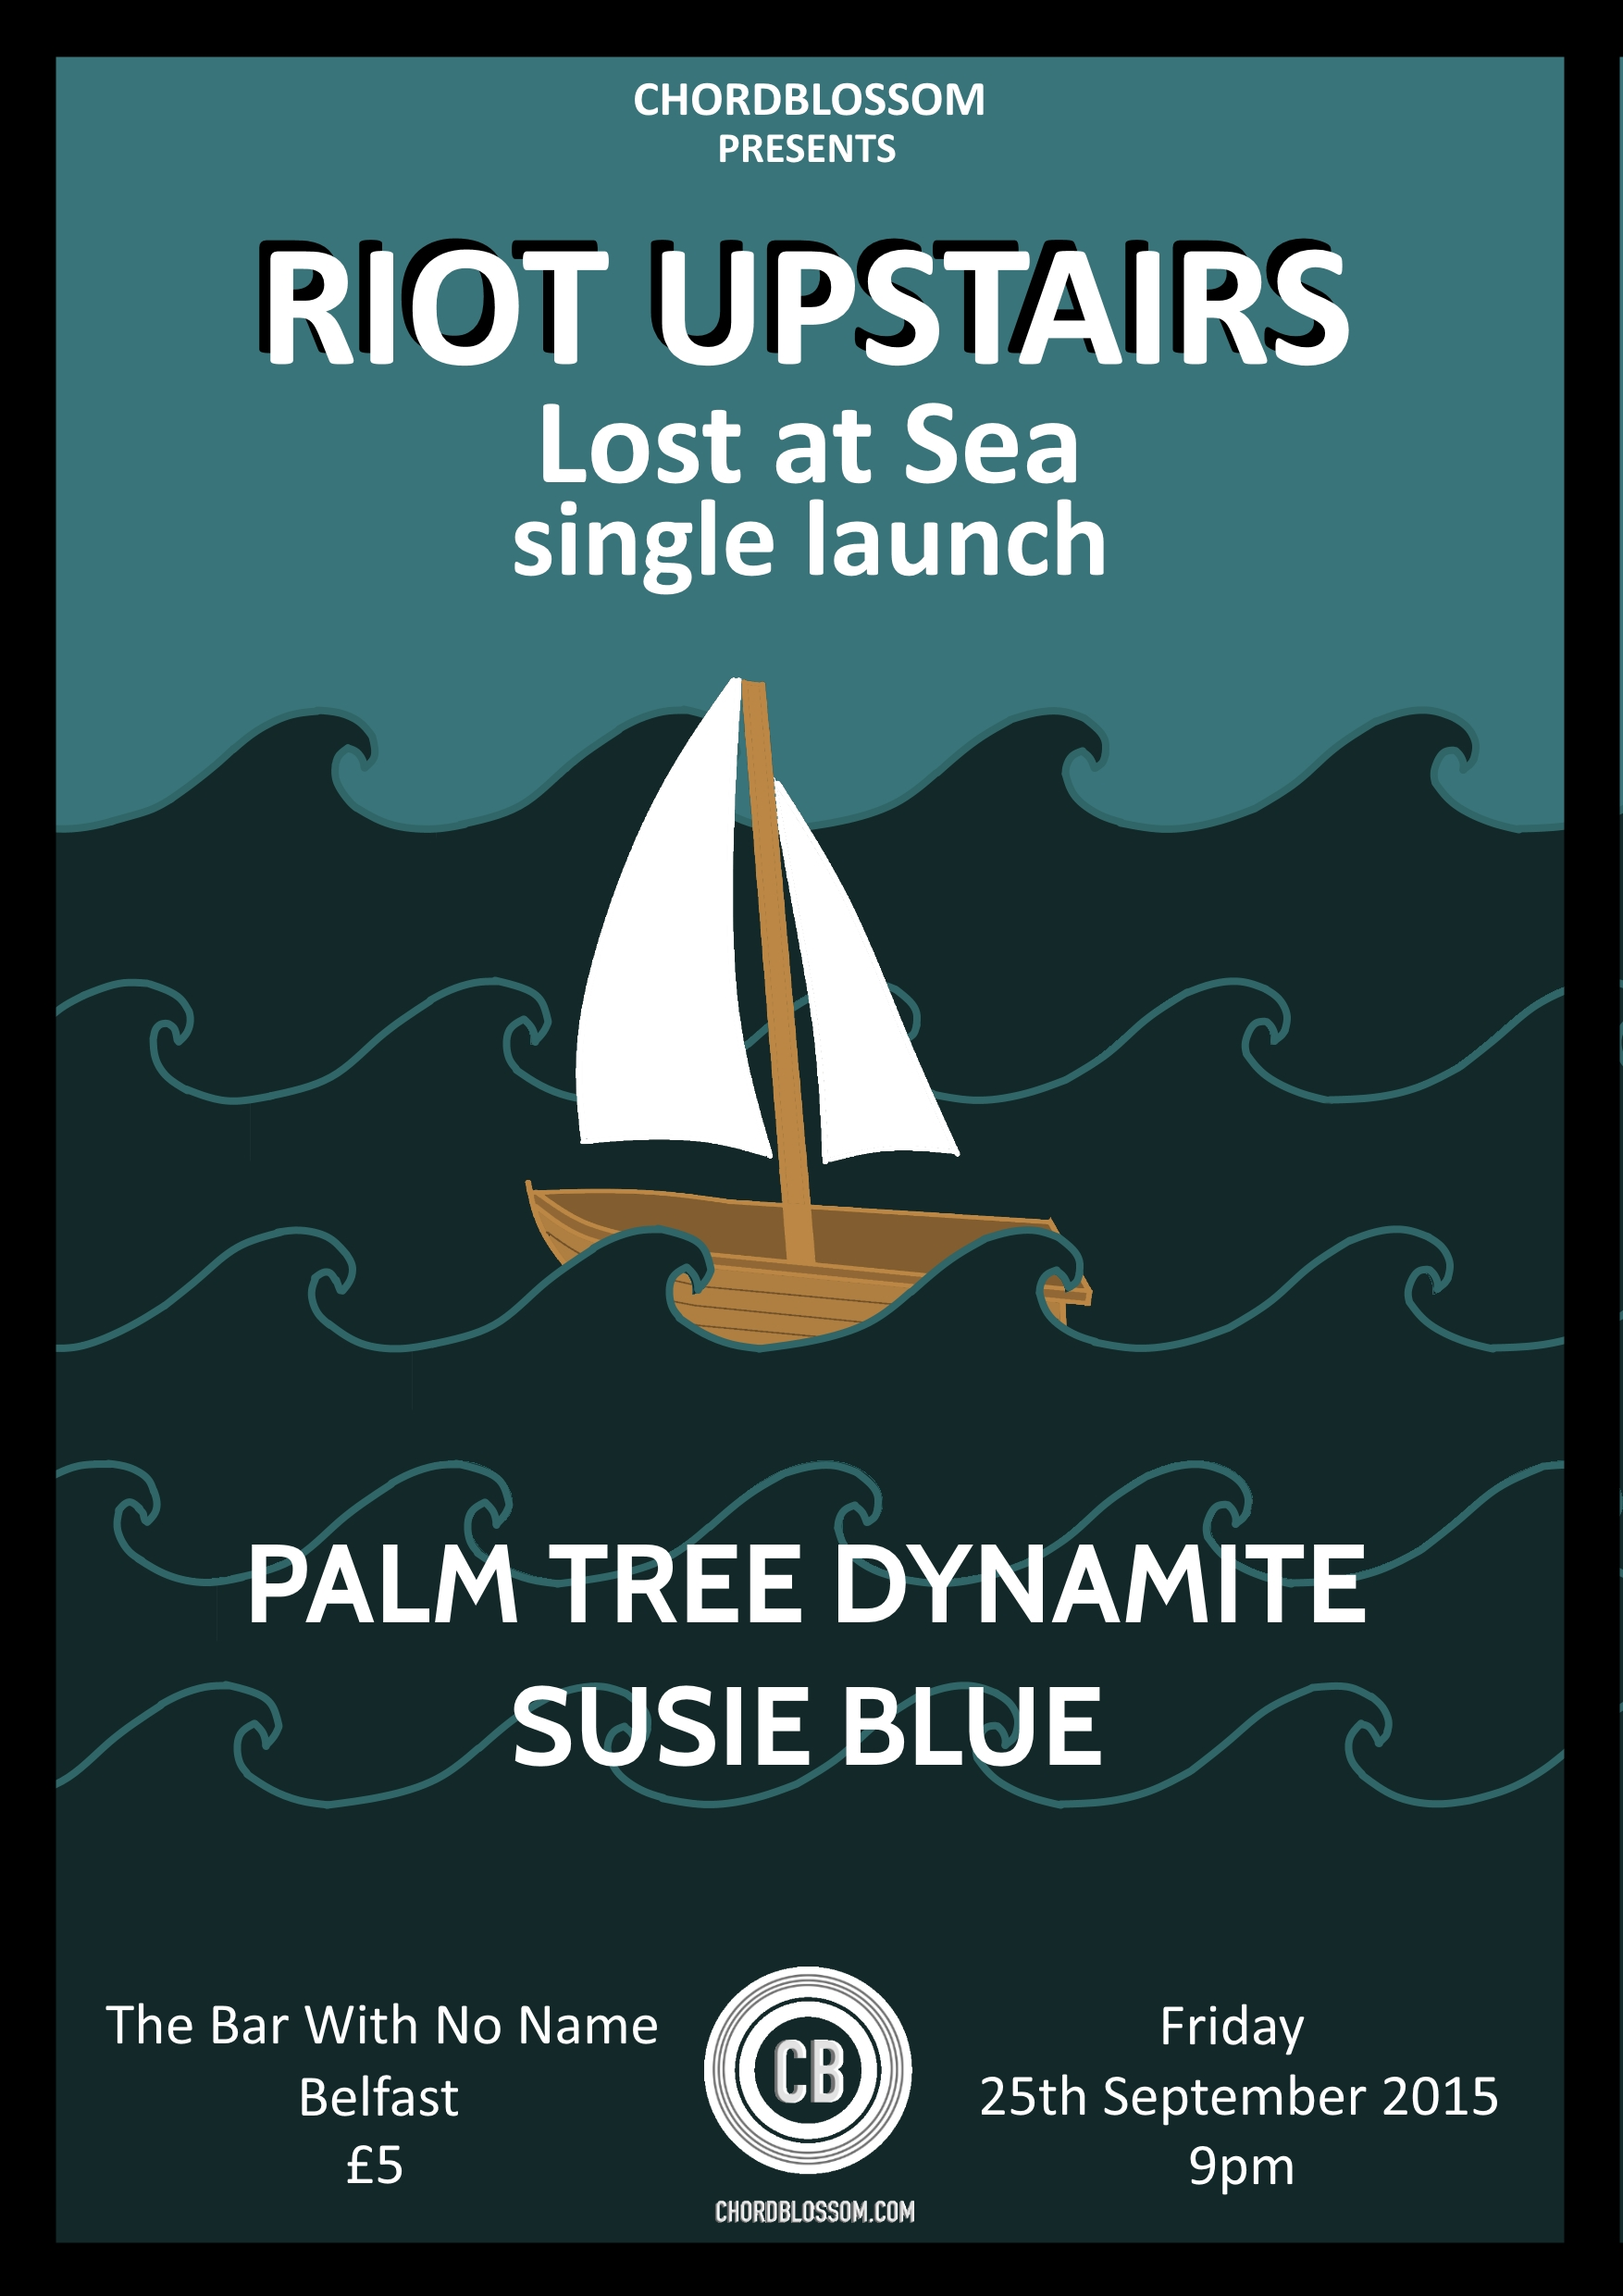 Chordblossom Presents: Riot Upstairs 'Lost At Sea' Single Launch with Susie Blue & Palm Tree Dynamite